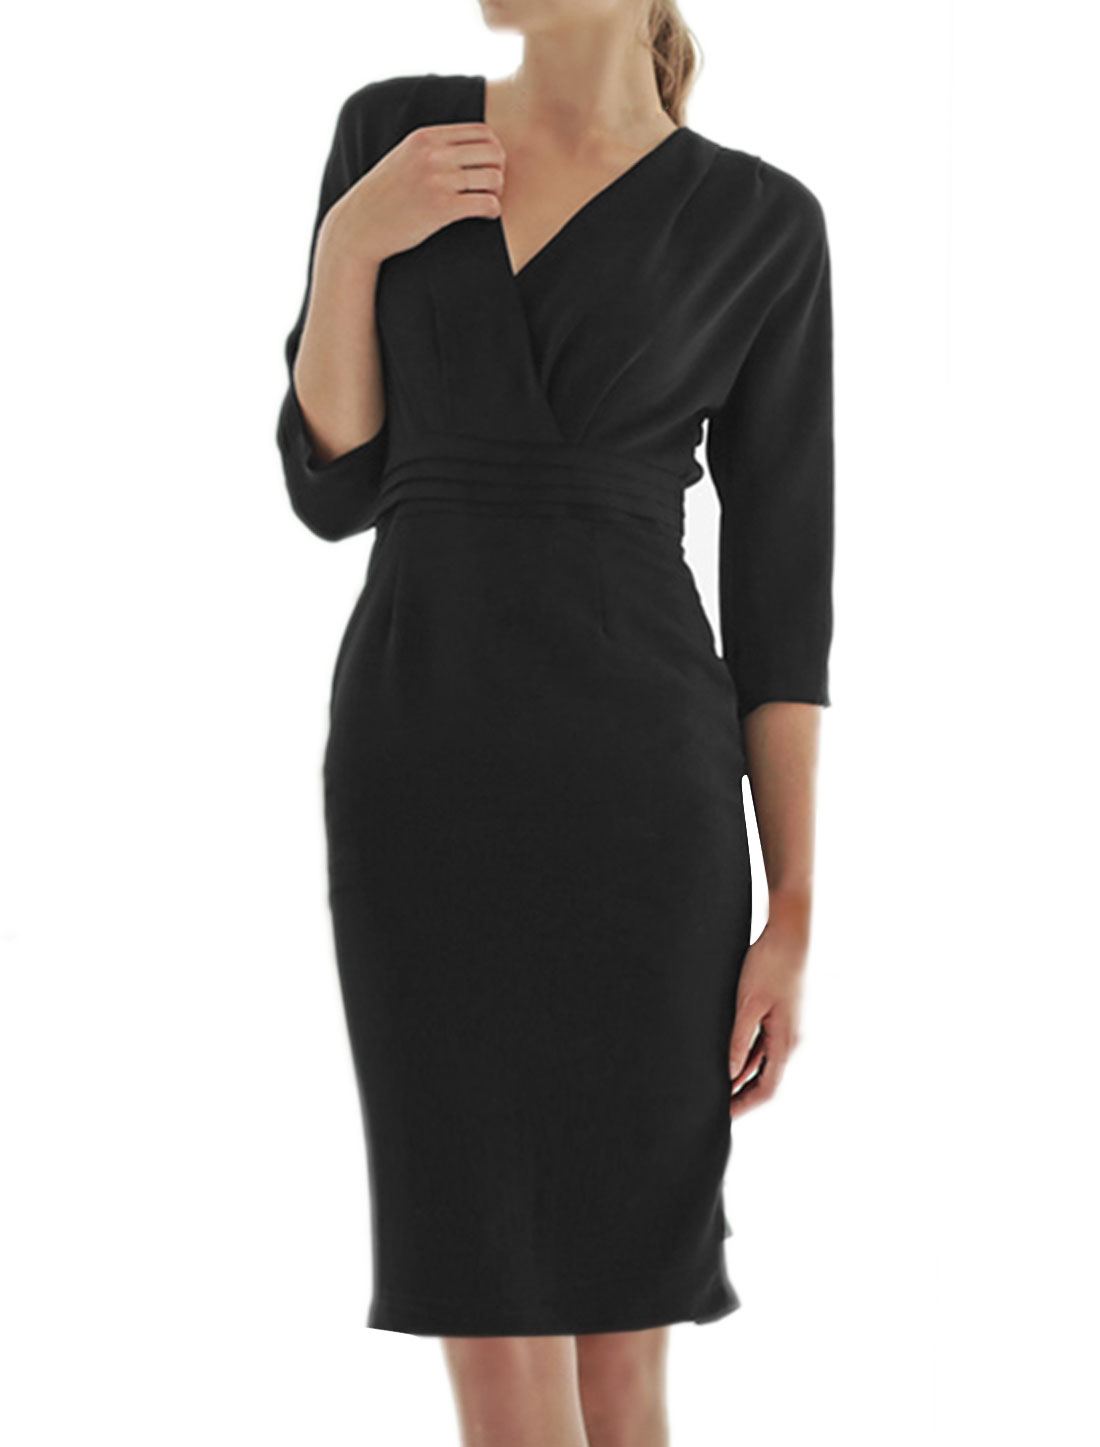 Ladies Crossover V Neck 3/4 Sleeves Pencil Dress Black XS